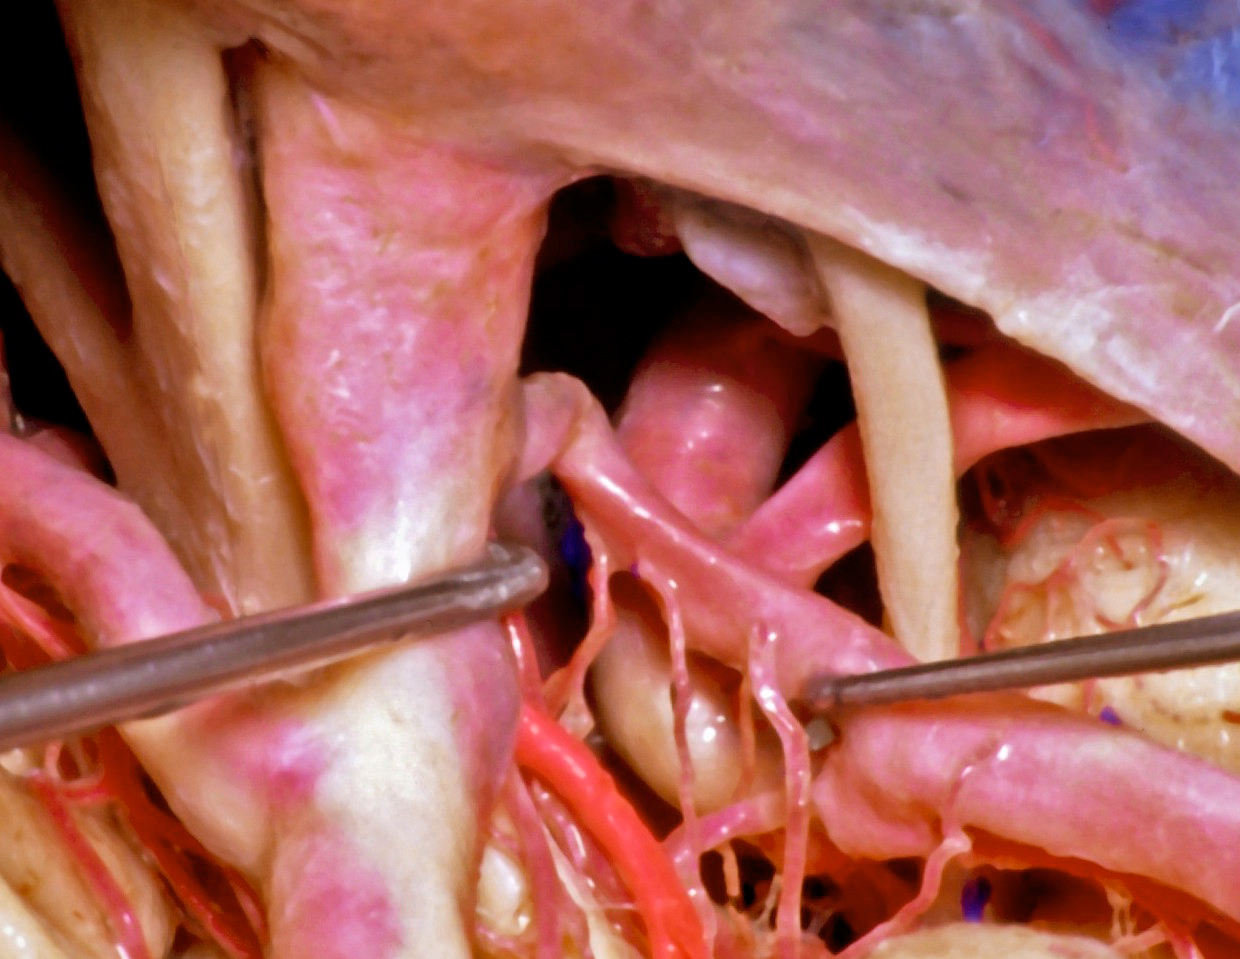 Figure 2: A lateral nonoperative view across the posterior ICA demonstrates the anatomic relationships between the PCoA (mobilized with the right dissector,) its perforating vessels, and the AChA (in bright red.) The oculomotor nerve is visible (image courtesy of AL Rhoton, Jr.)